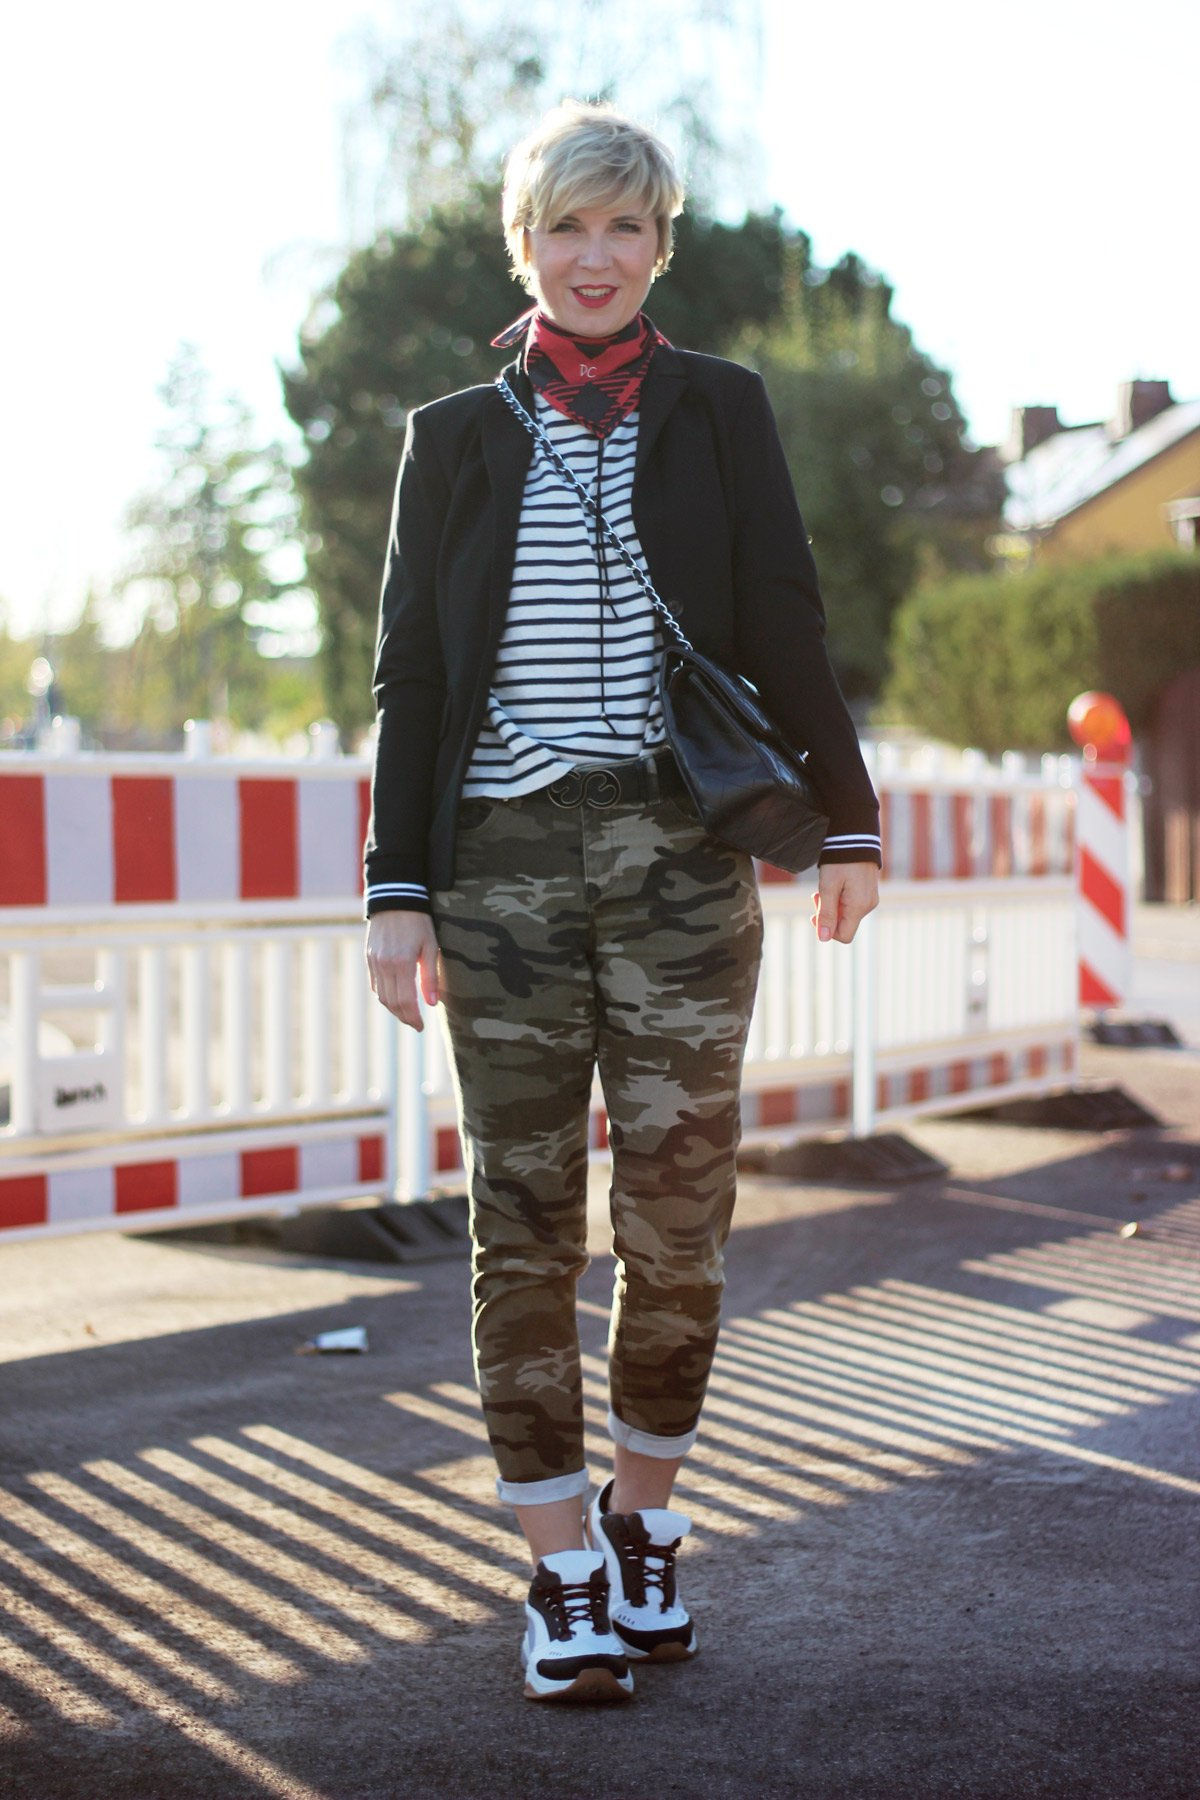 conny doll lifestyle: Mein Look: Mustermix Camouflage mit Streifen, roter Mantel, casual, Inspiration